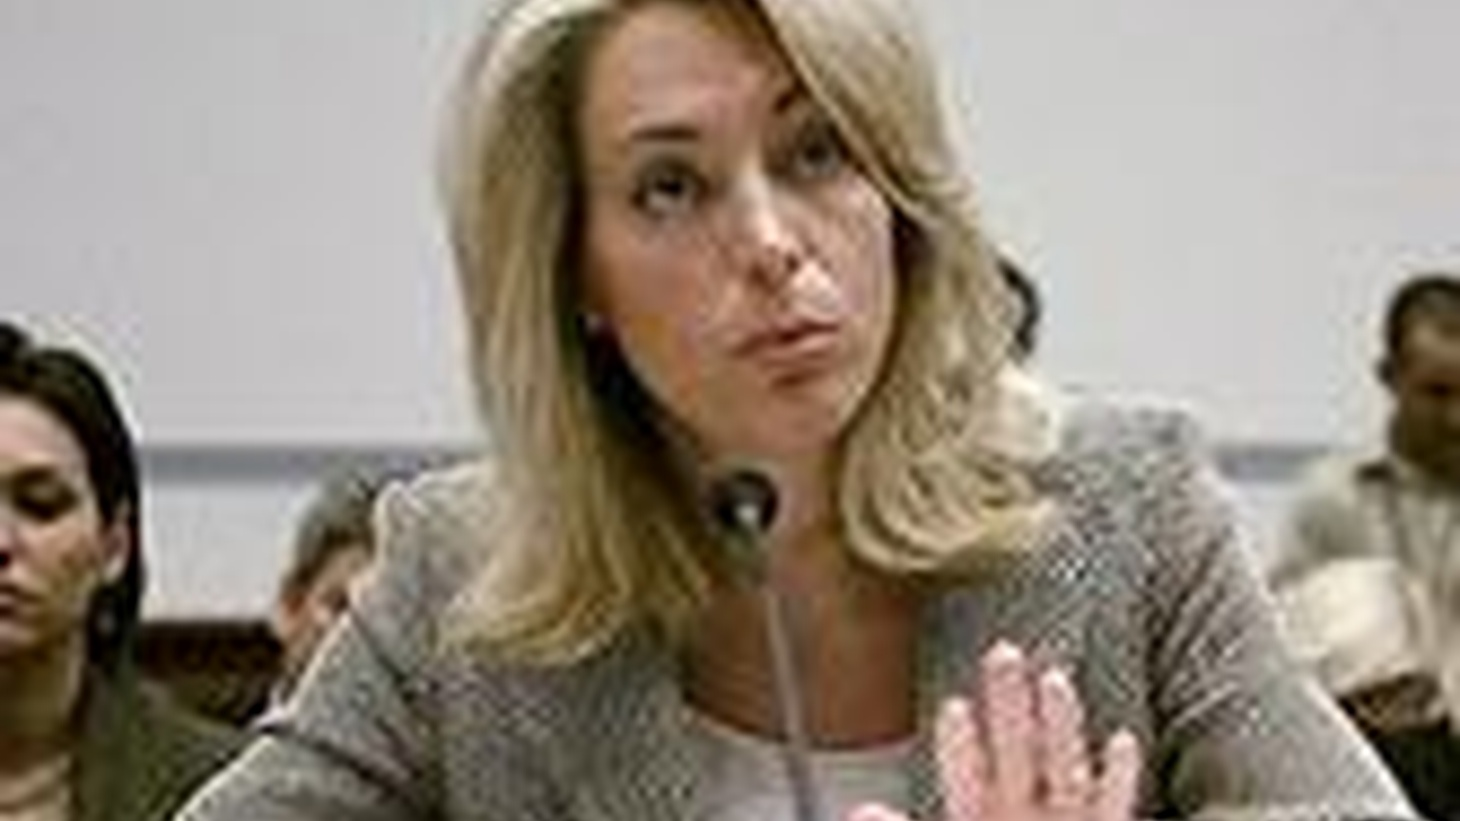 Valerie Plame speaks for herself, Tony thinks her testimony is underwhelming. Did the Democrats fail in their vote on an Iraq pullout? Hill and Bill tussle with Obama over Iraq. What difference will the early California primary make? And-- Bethesda Naval Hospital – good news in a bad week for the VA.